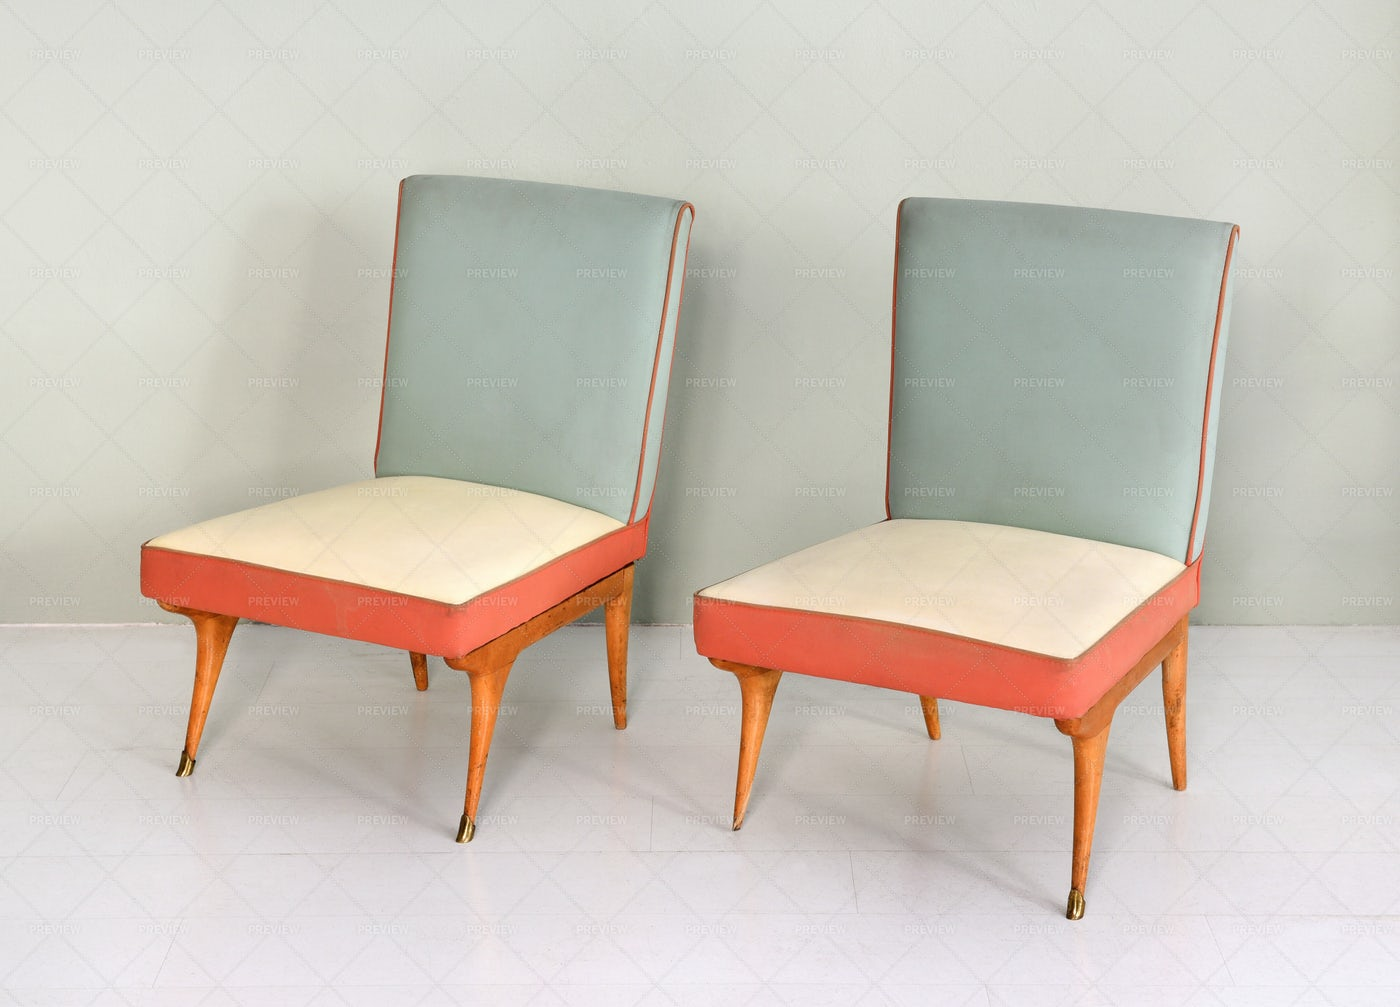 Vintage Padded Chairs: Stock Photos